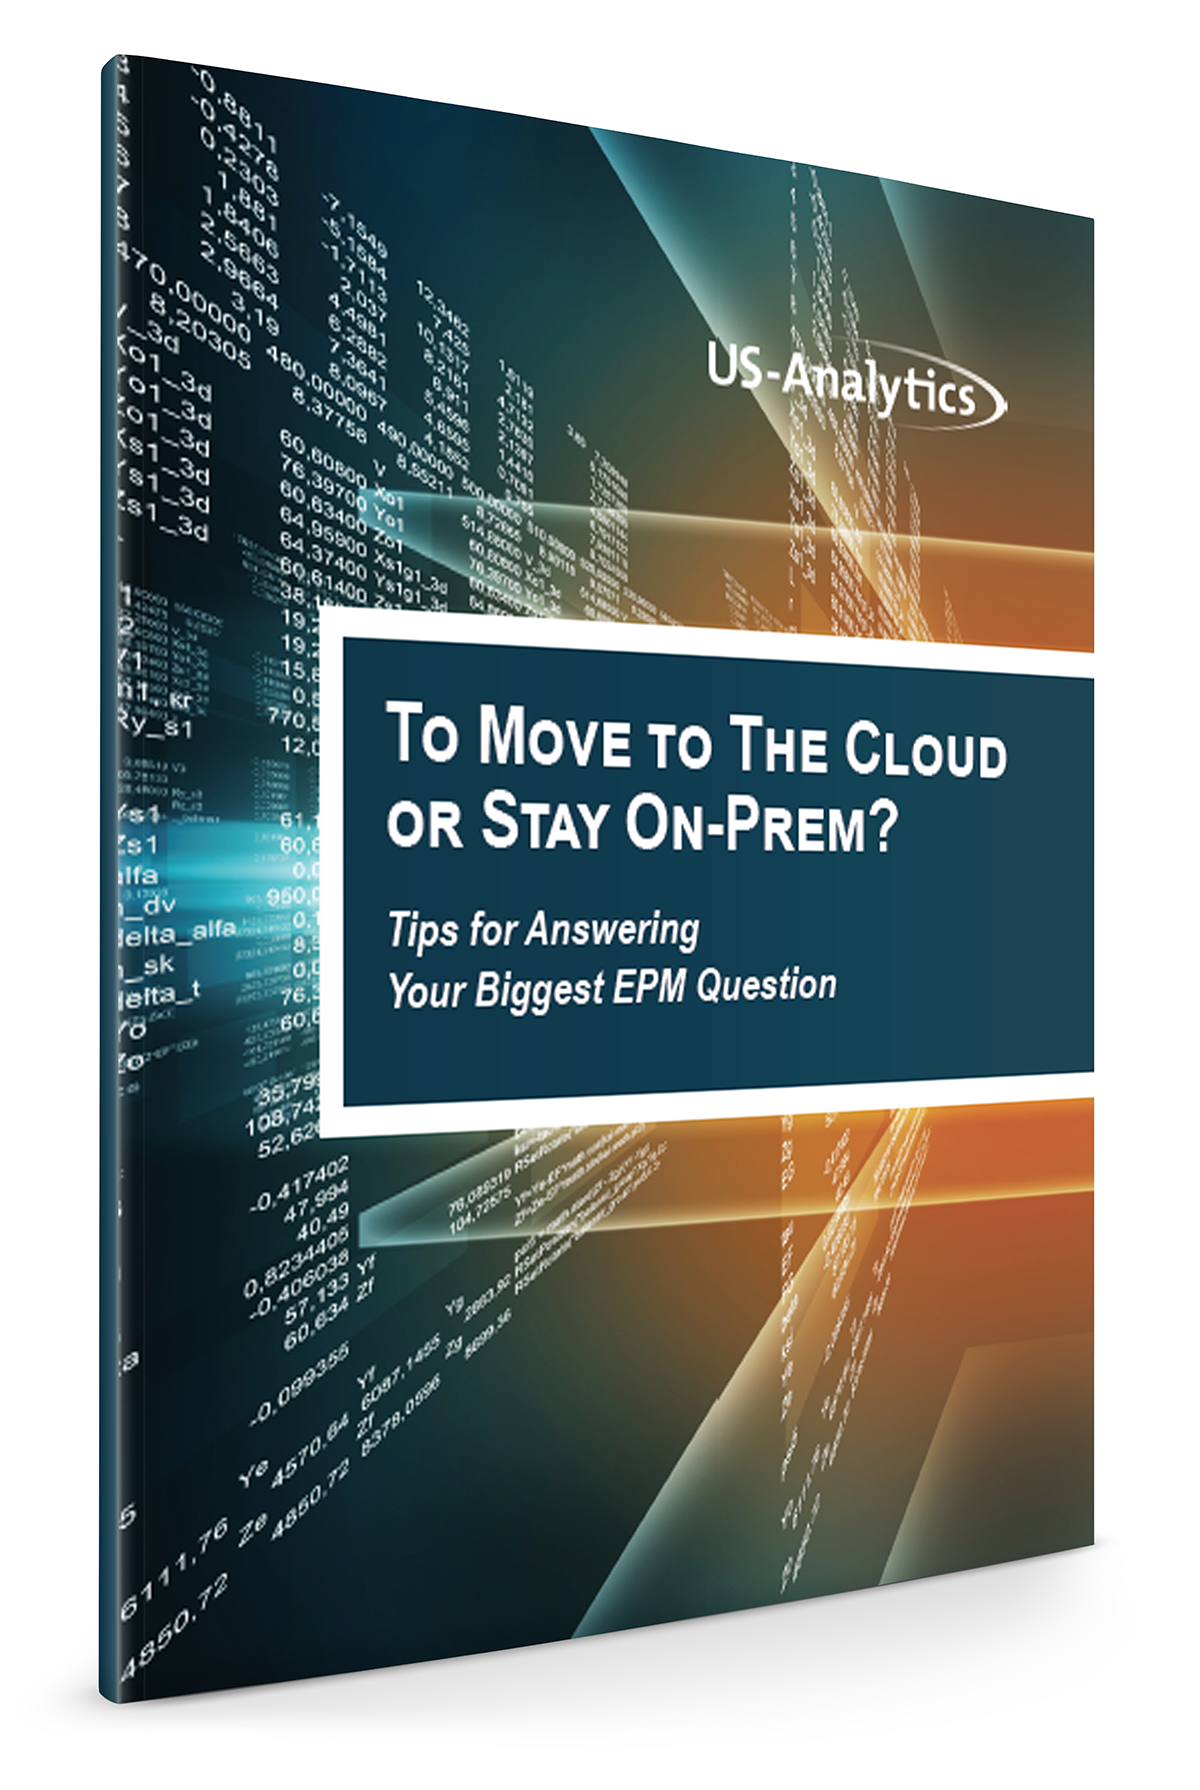 To Move to the Cloud or Stay On-Prem_landing page image.png